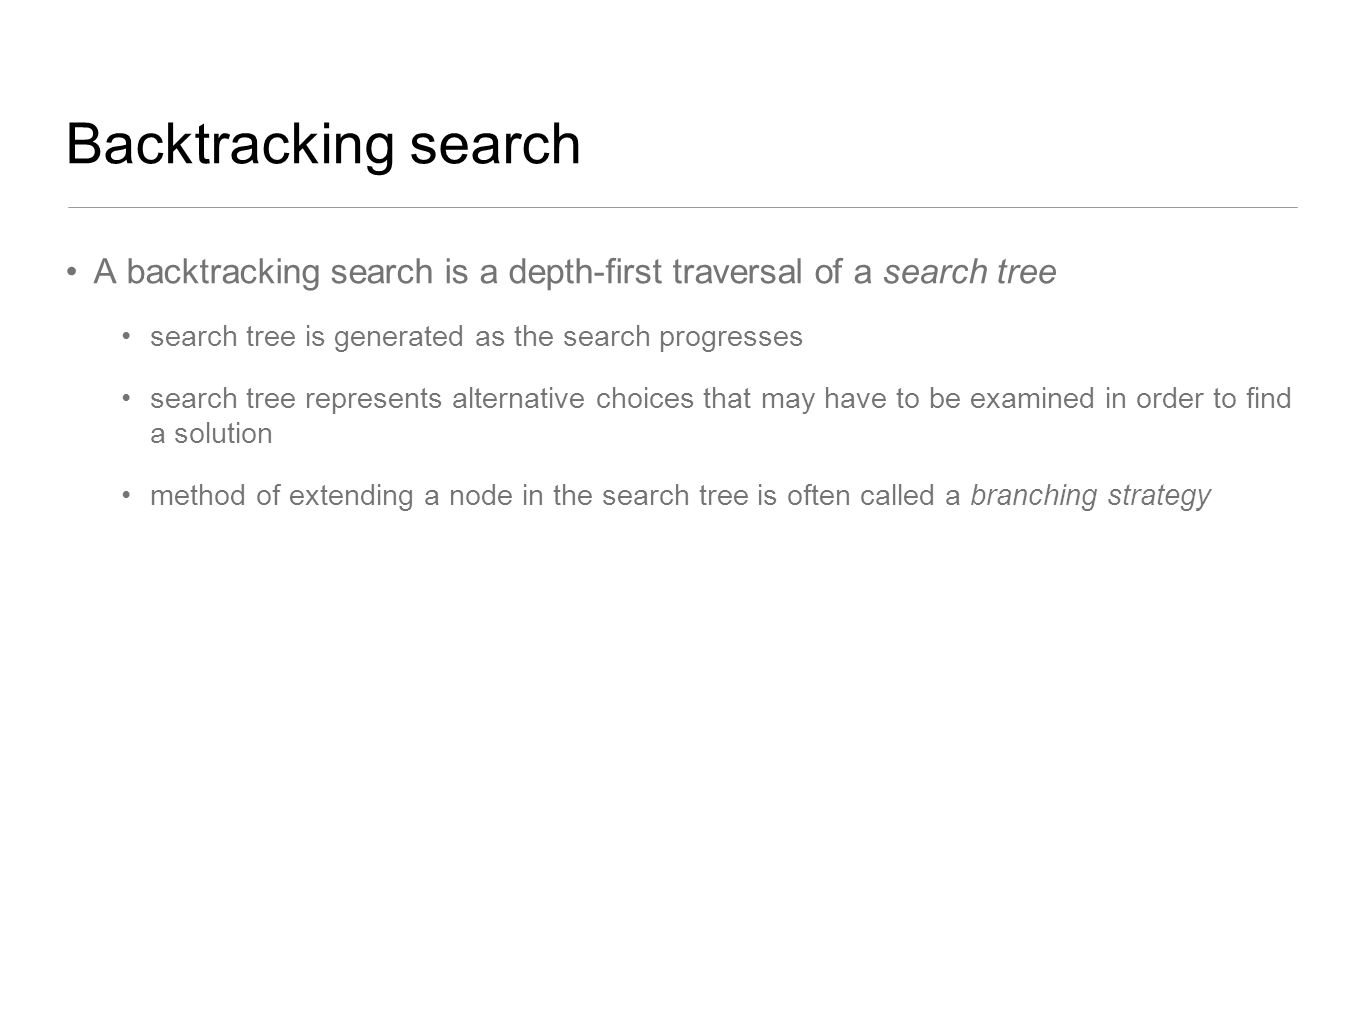 Backtracking search A backtracking search is a depth-first traversal of a search tree. search tree is generated as the search progresses.